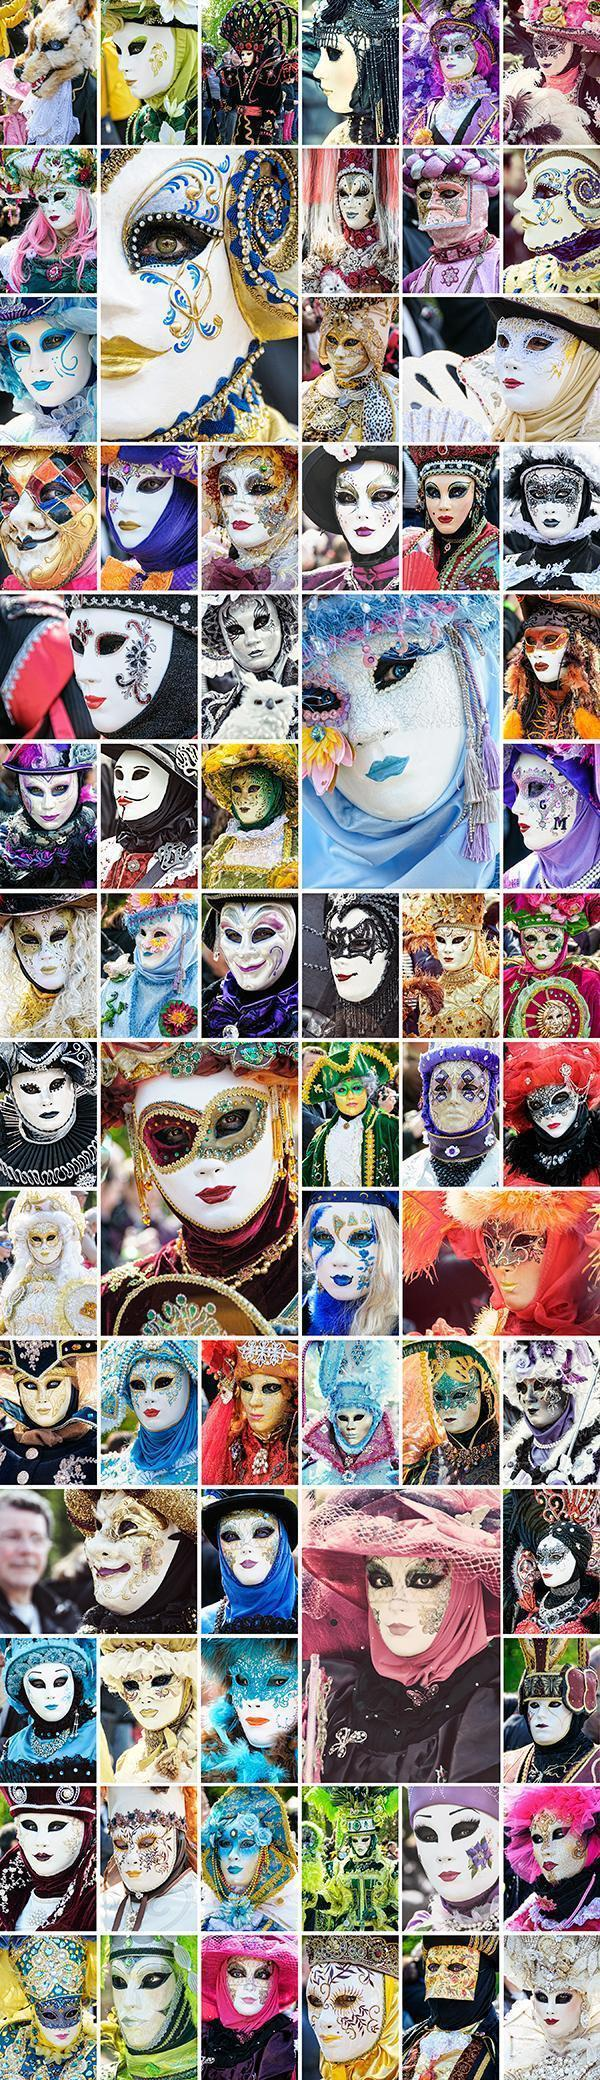 Up close and personal with the carnival masks